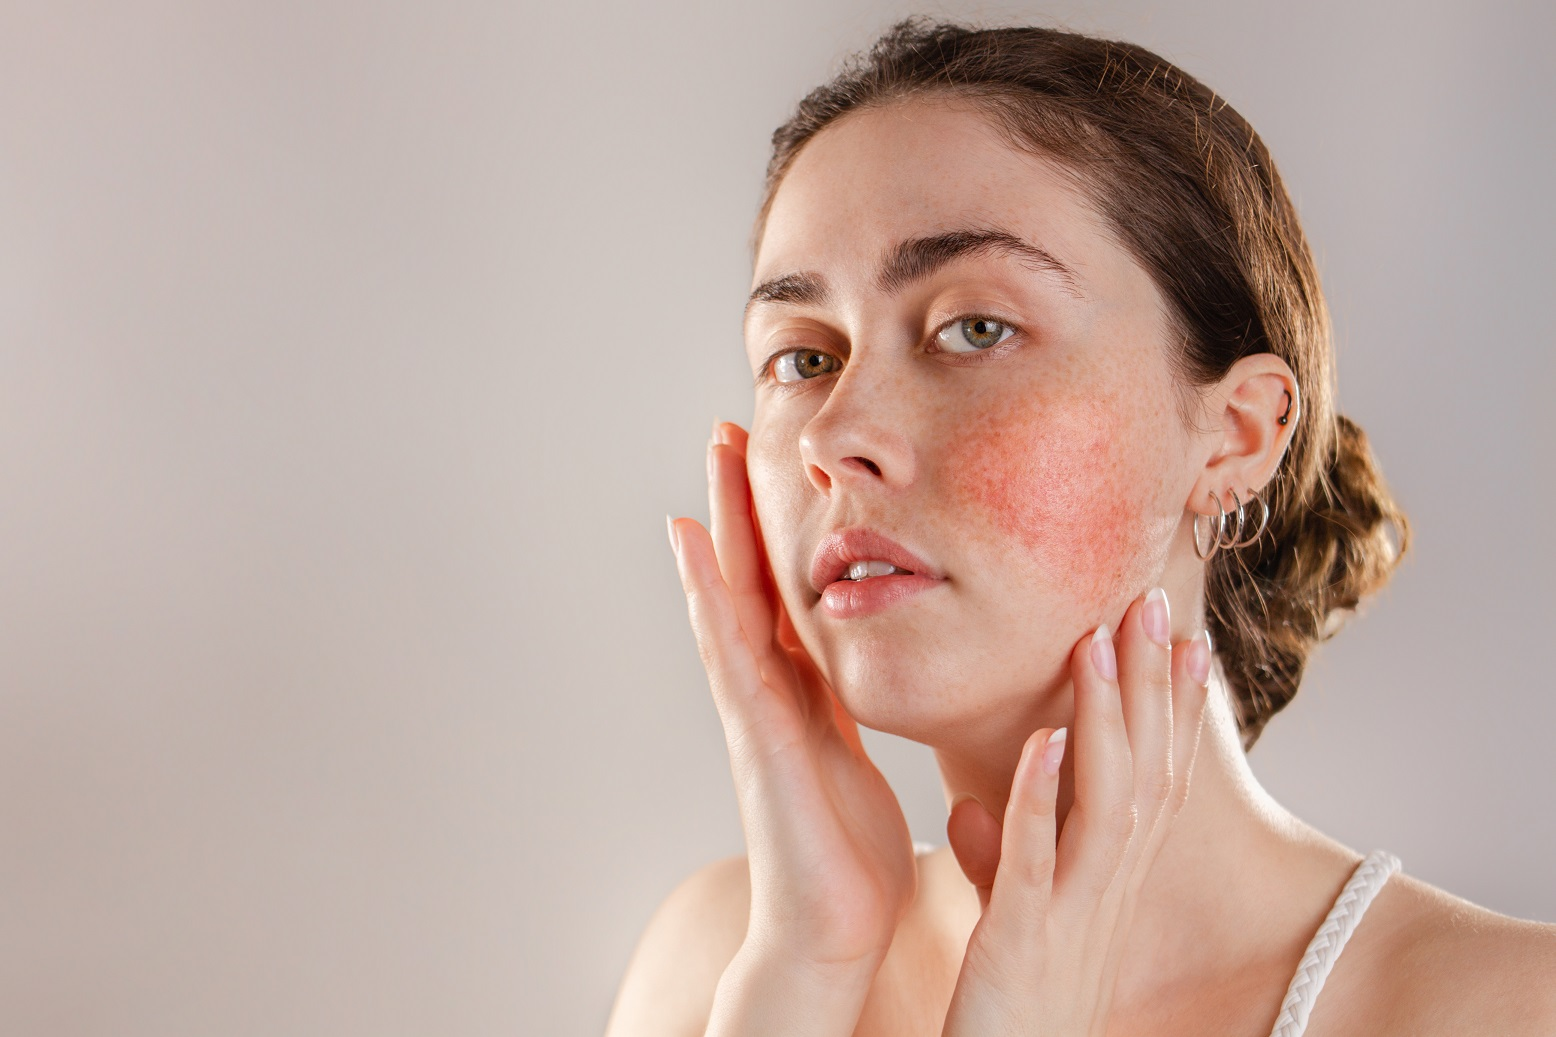 Why Do Many Women Develop Rosacea During Pregnancy?